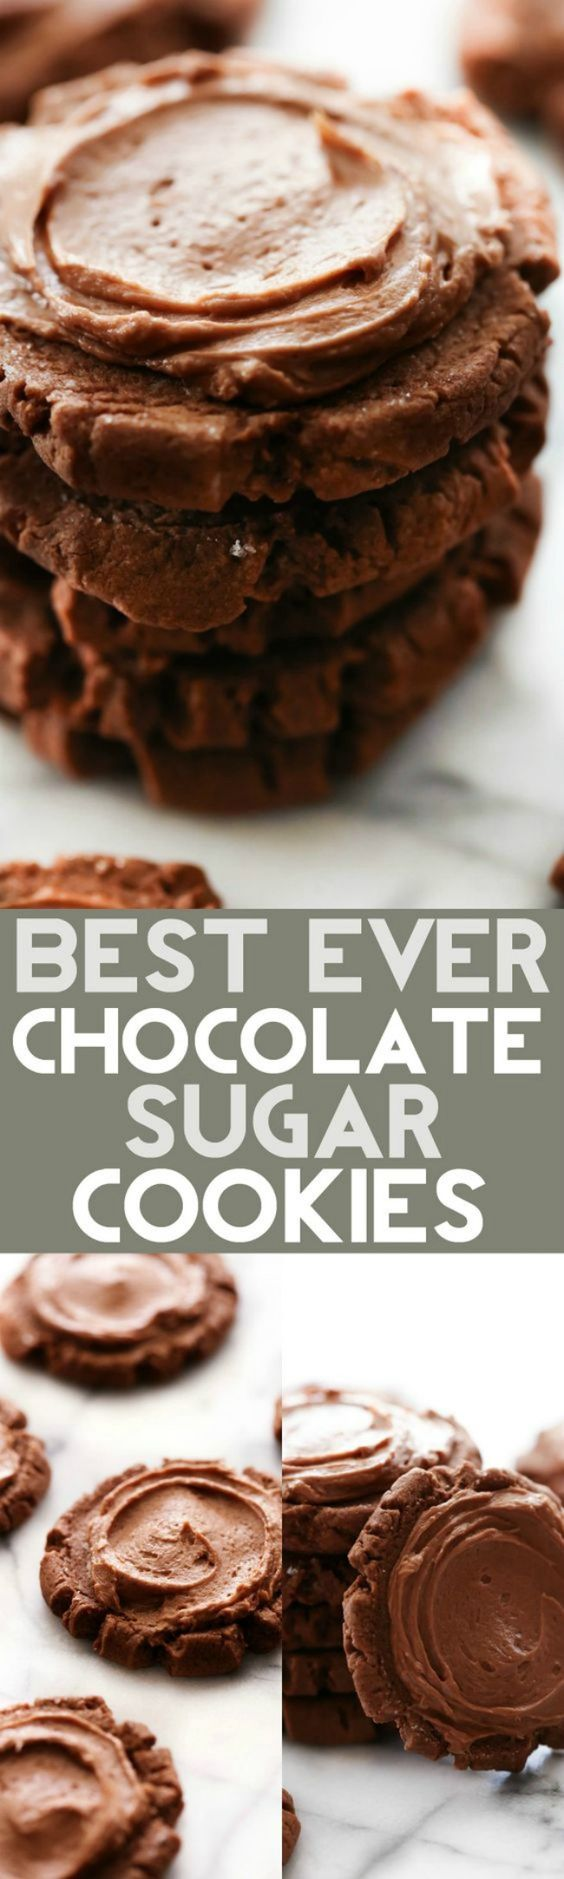 Best Ever Chocolate Sugar Cookies (Swig Dirtball Cookie Copycat) #sugarcookies #cookies #desserts #chocolate